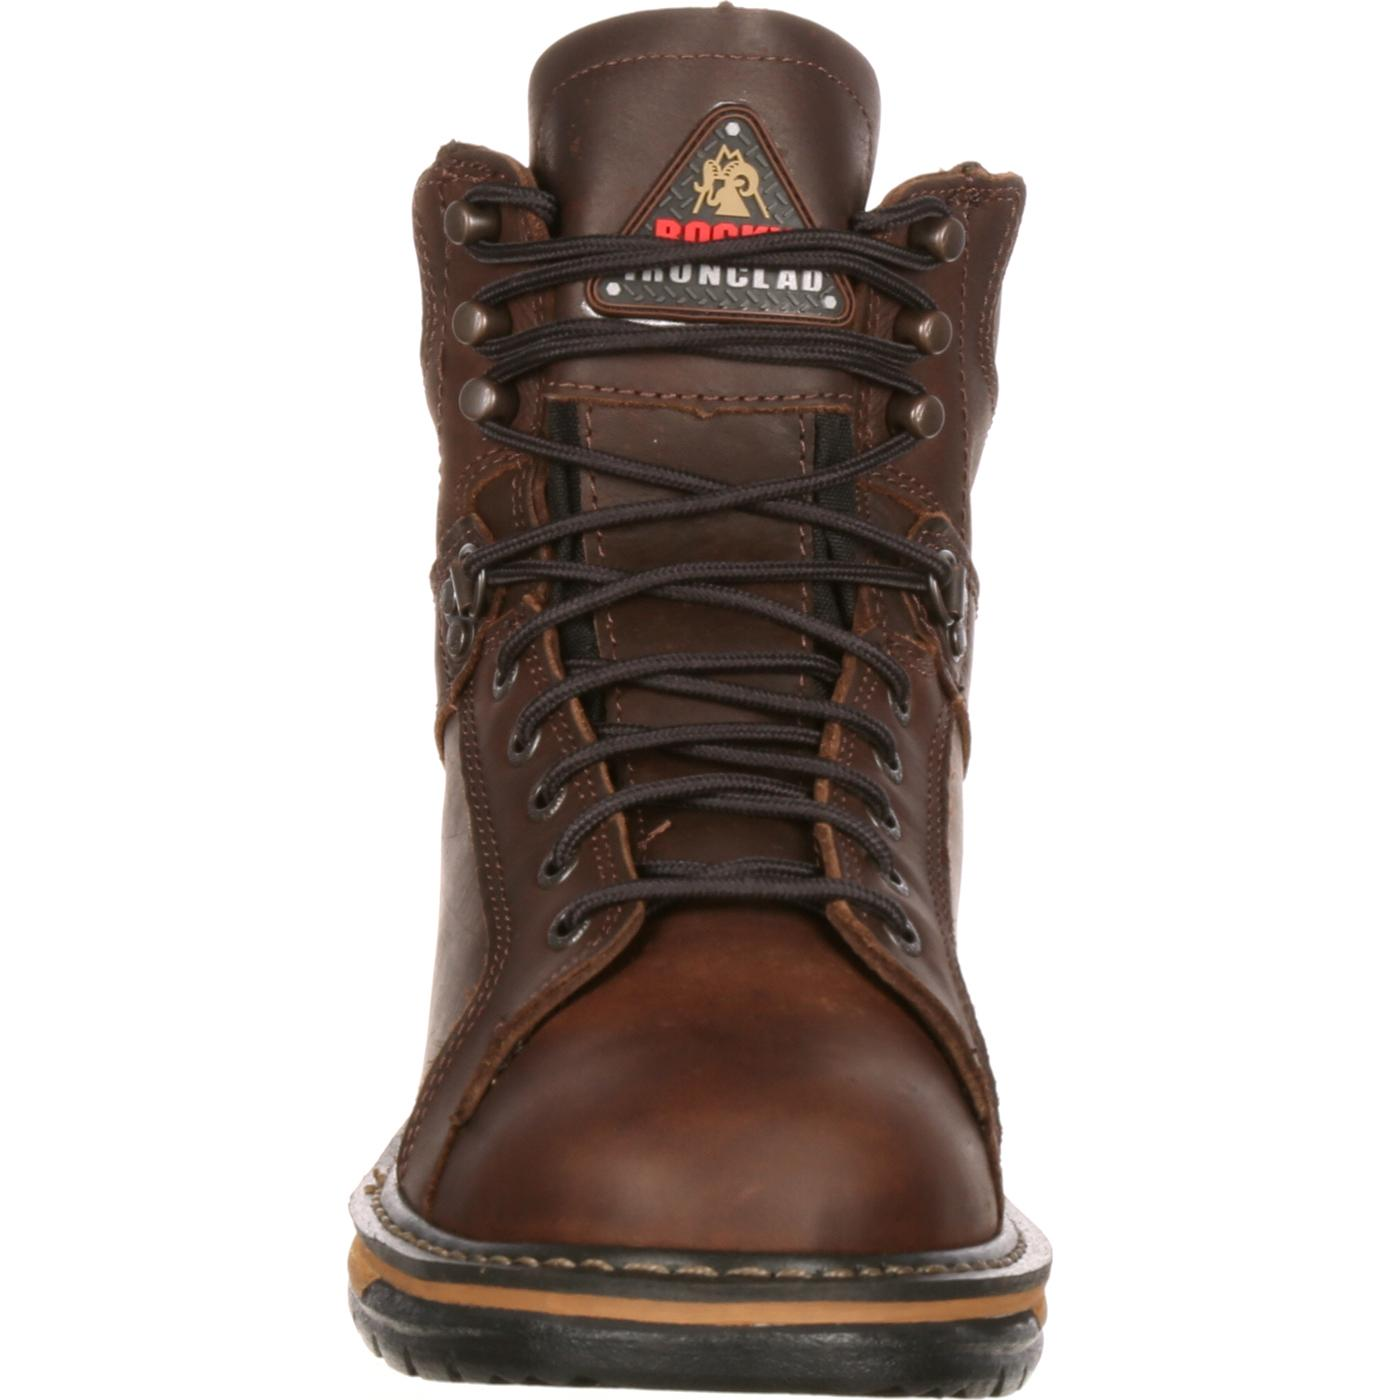 Rocky Lace Up Work Boots 28 Images Rocky S Aztec Brown Lace Up Composite Toe Waterproof